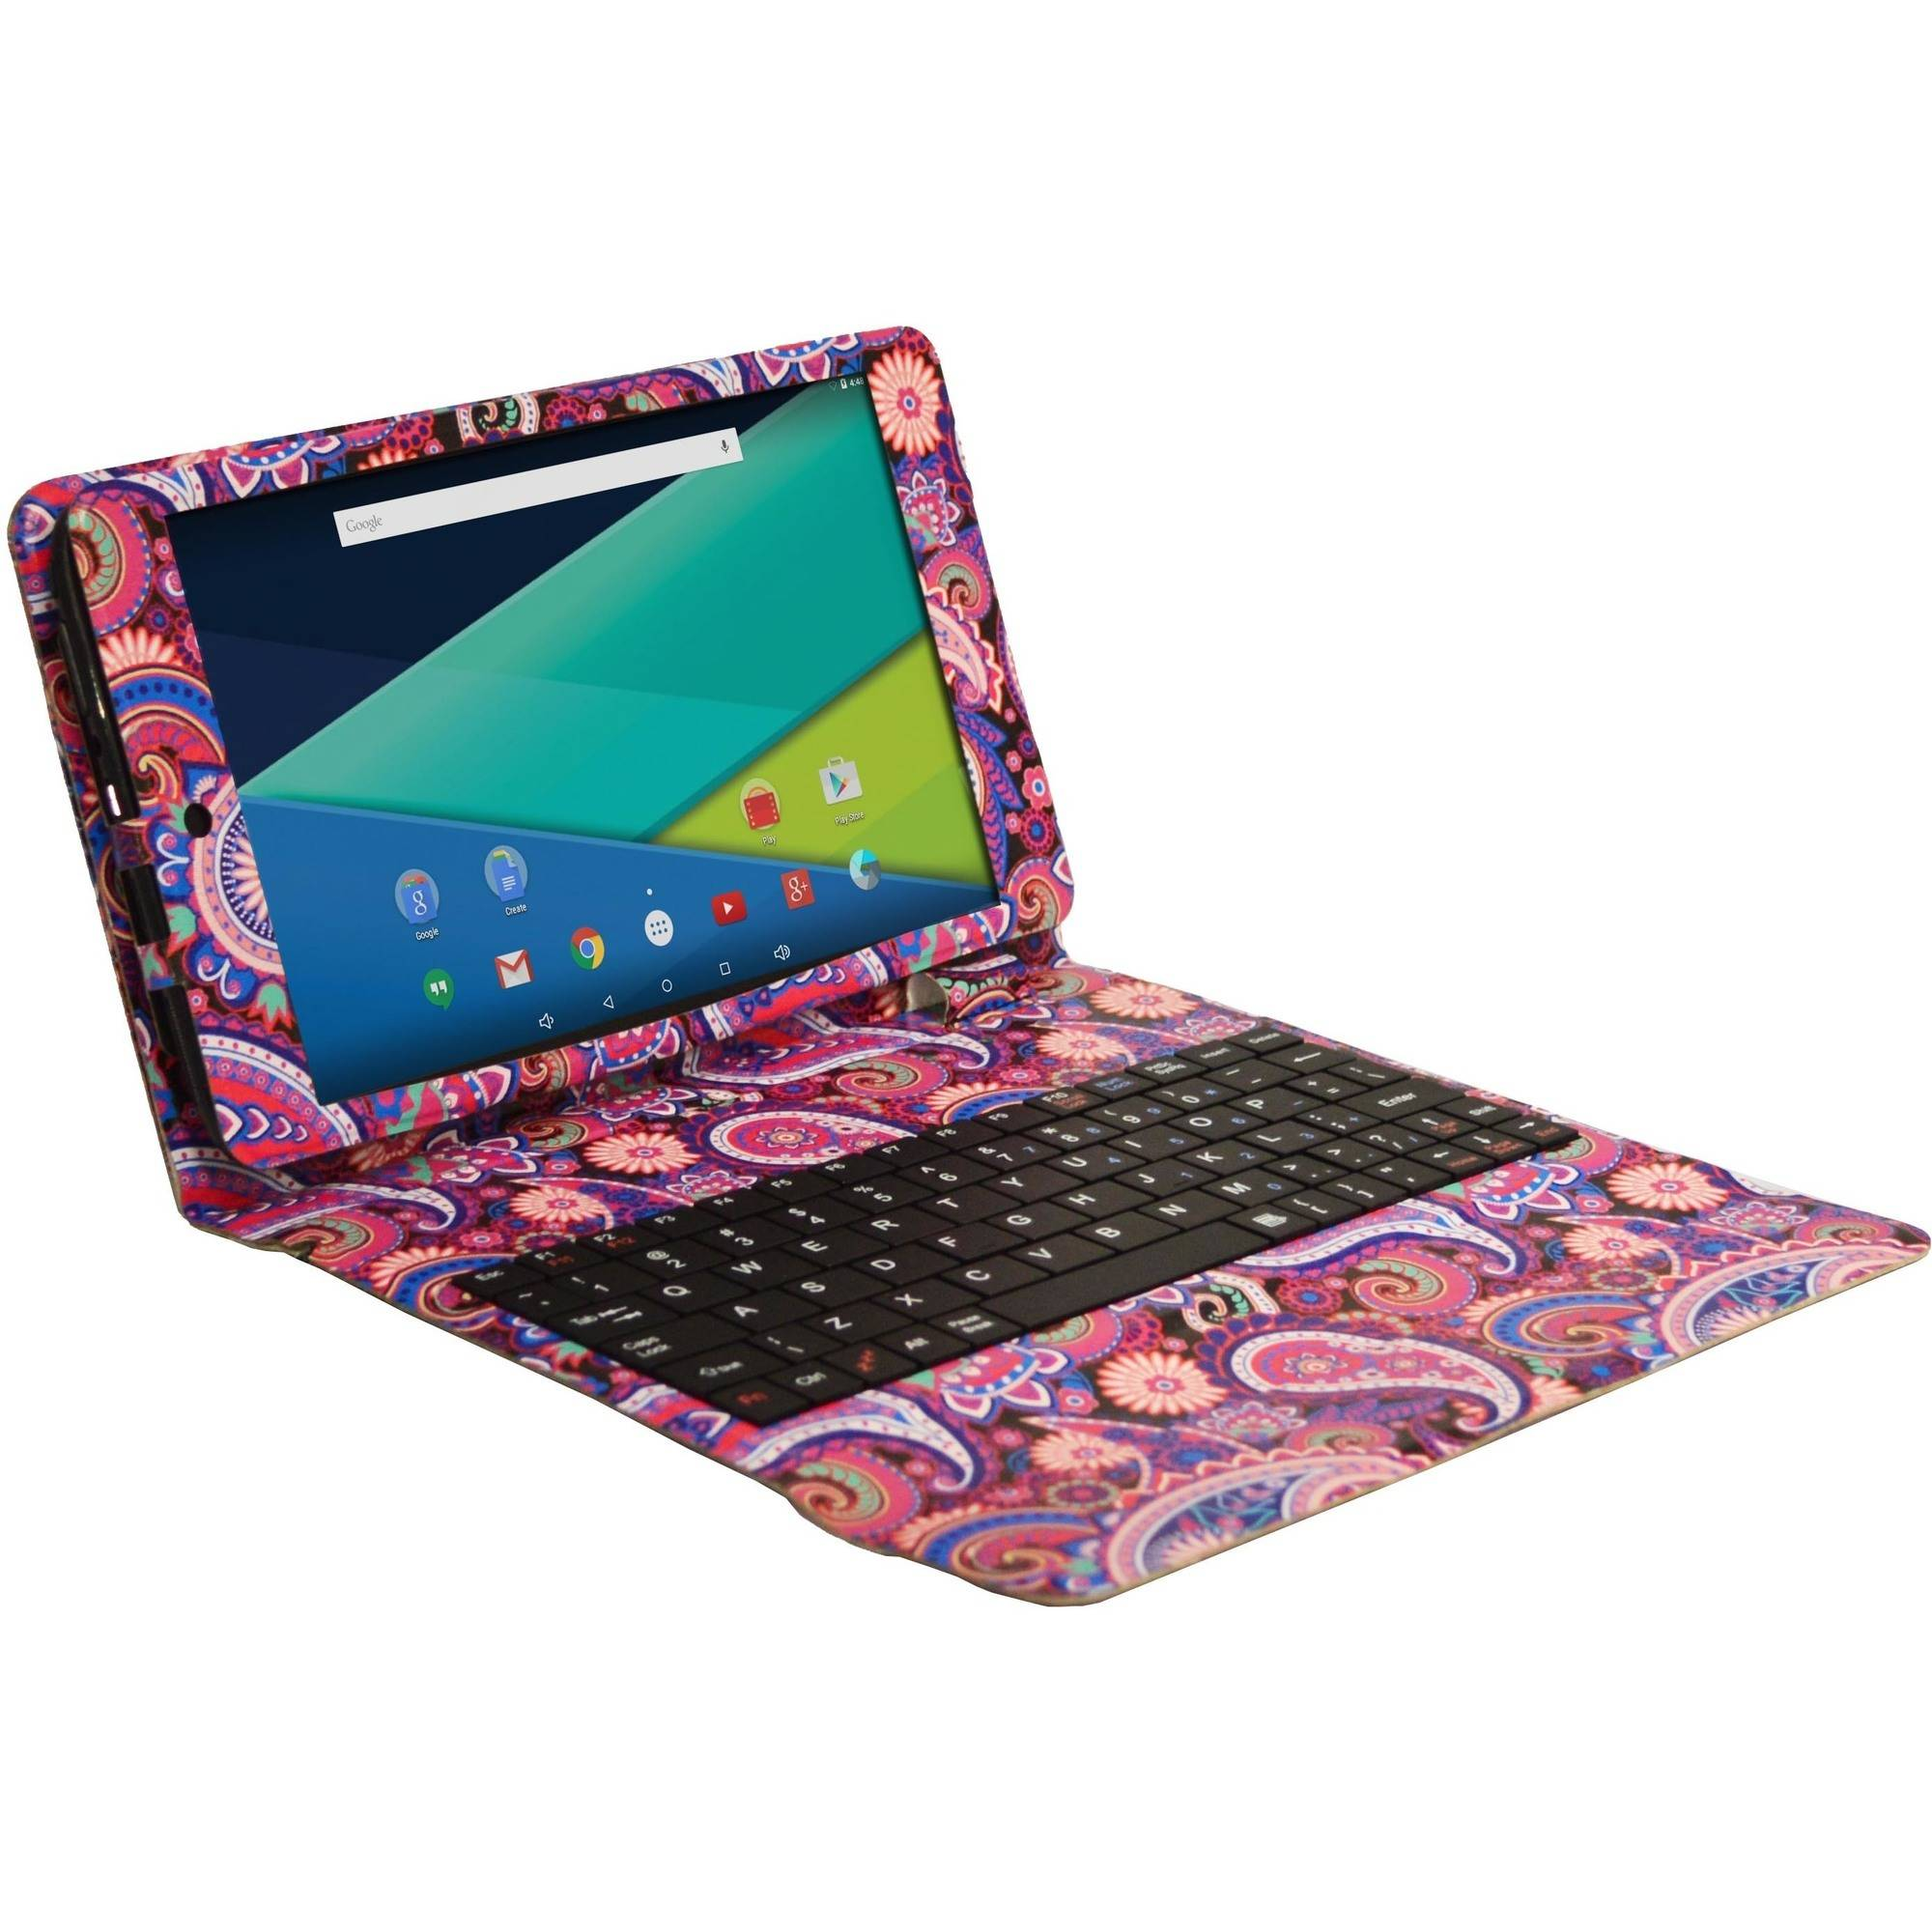 "Visual Land Prestige 8"" IPS Quad Core Intel 64 Bit Tablet 16GB includes Designer Keyboard Case - Paisley"